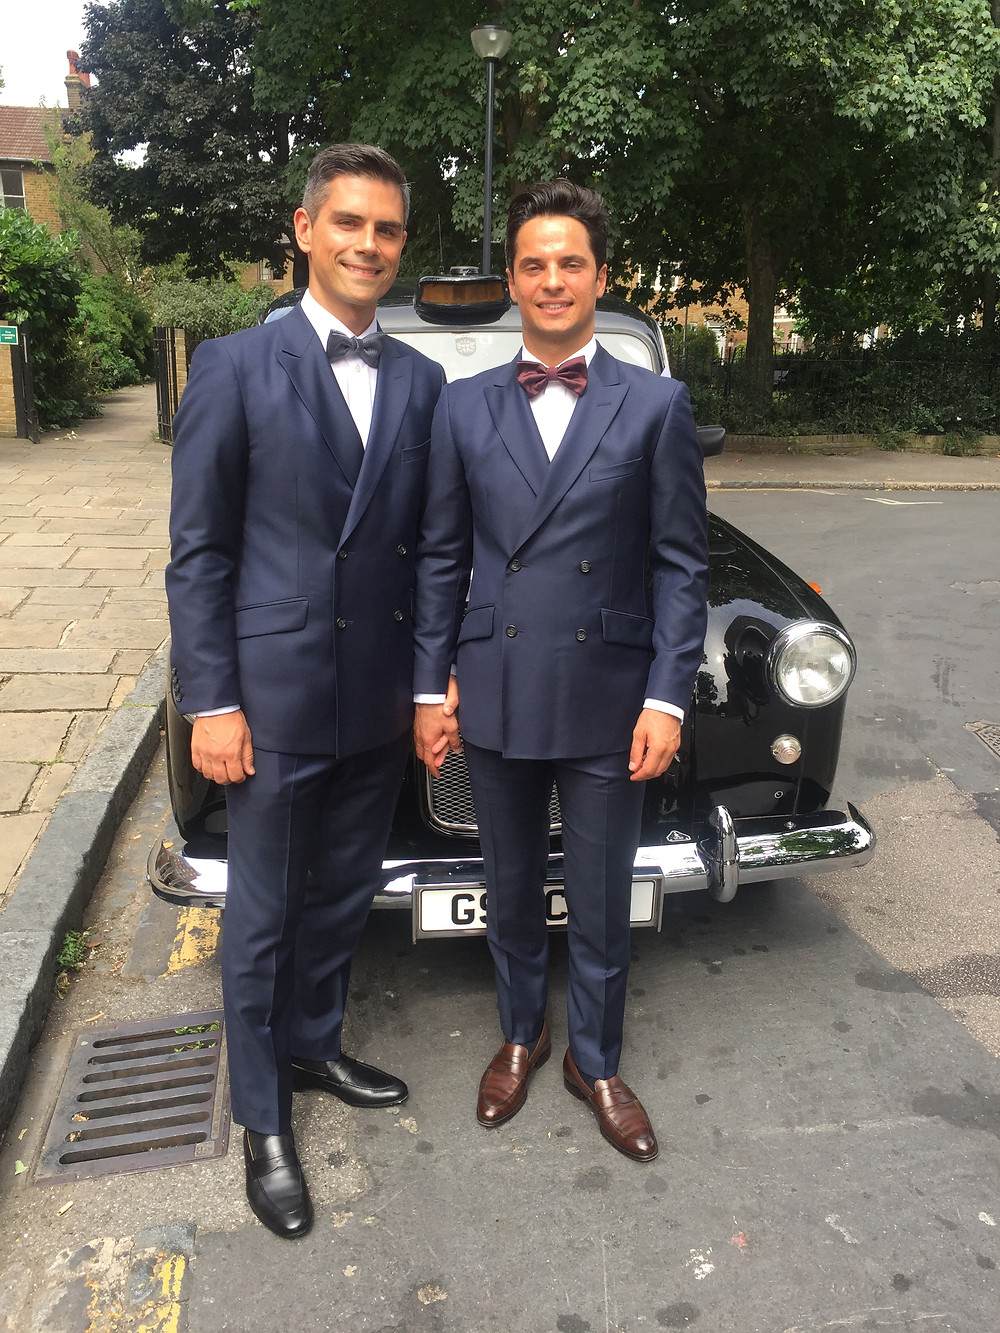 London civil ceremony in Greenwich, London